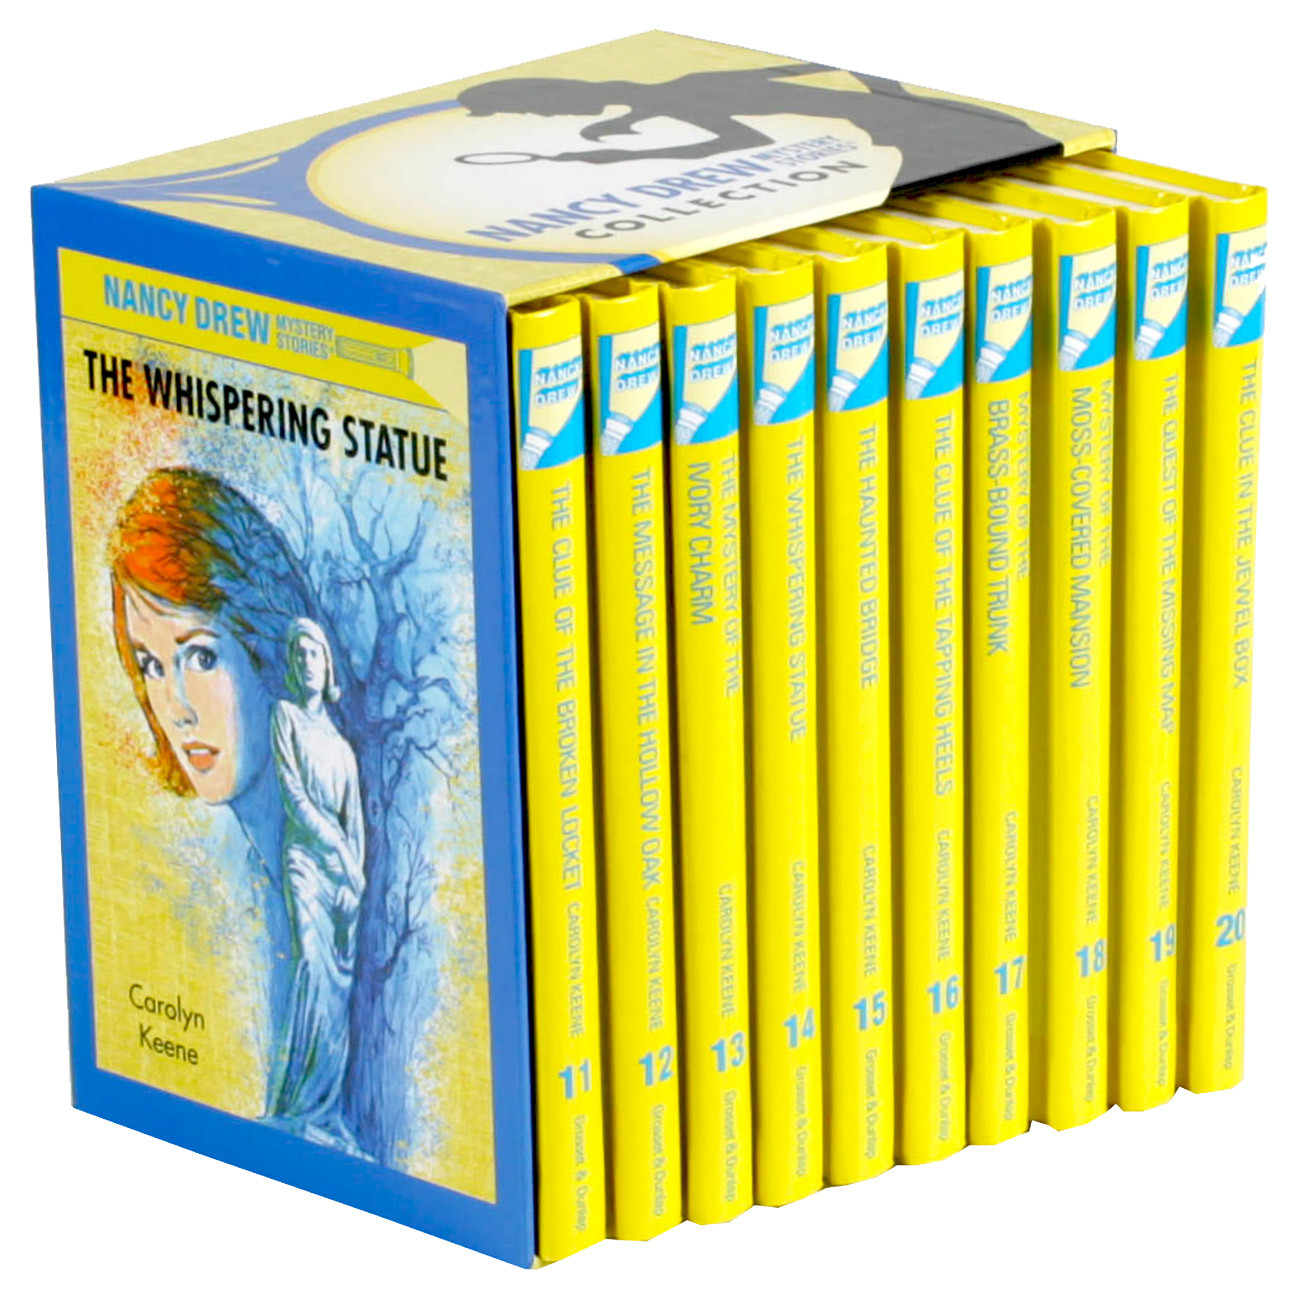 Nancy Drew Mystery Stories Collection: 11-20 Book Box Set...